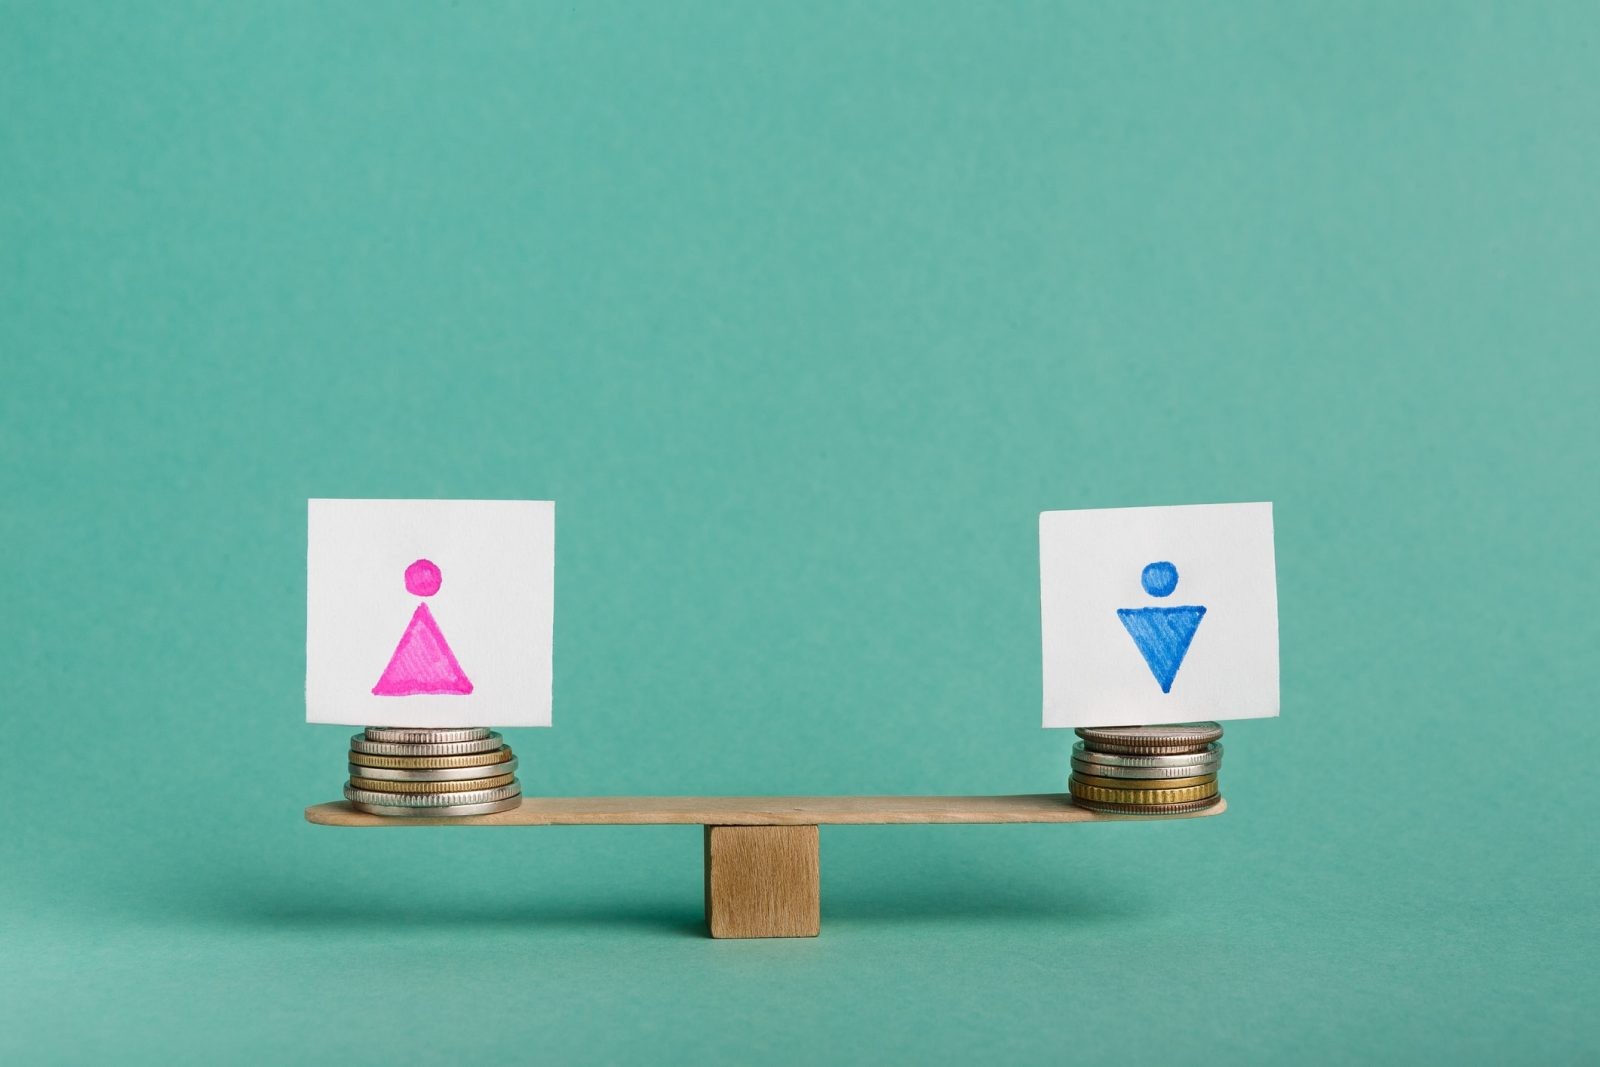 Equal Pay Day to challenge gender pay gap in the Czech Republic